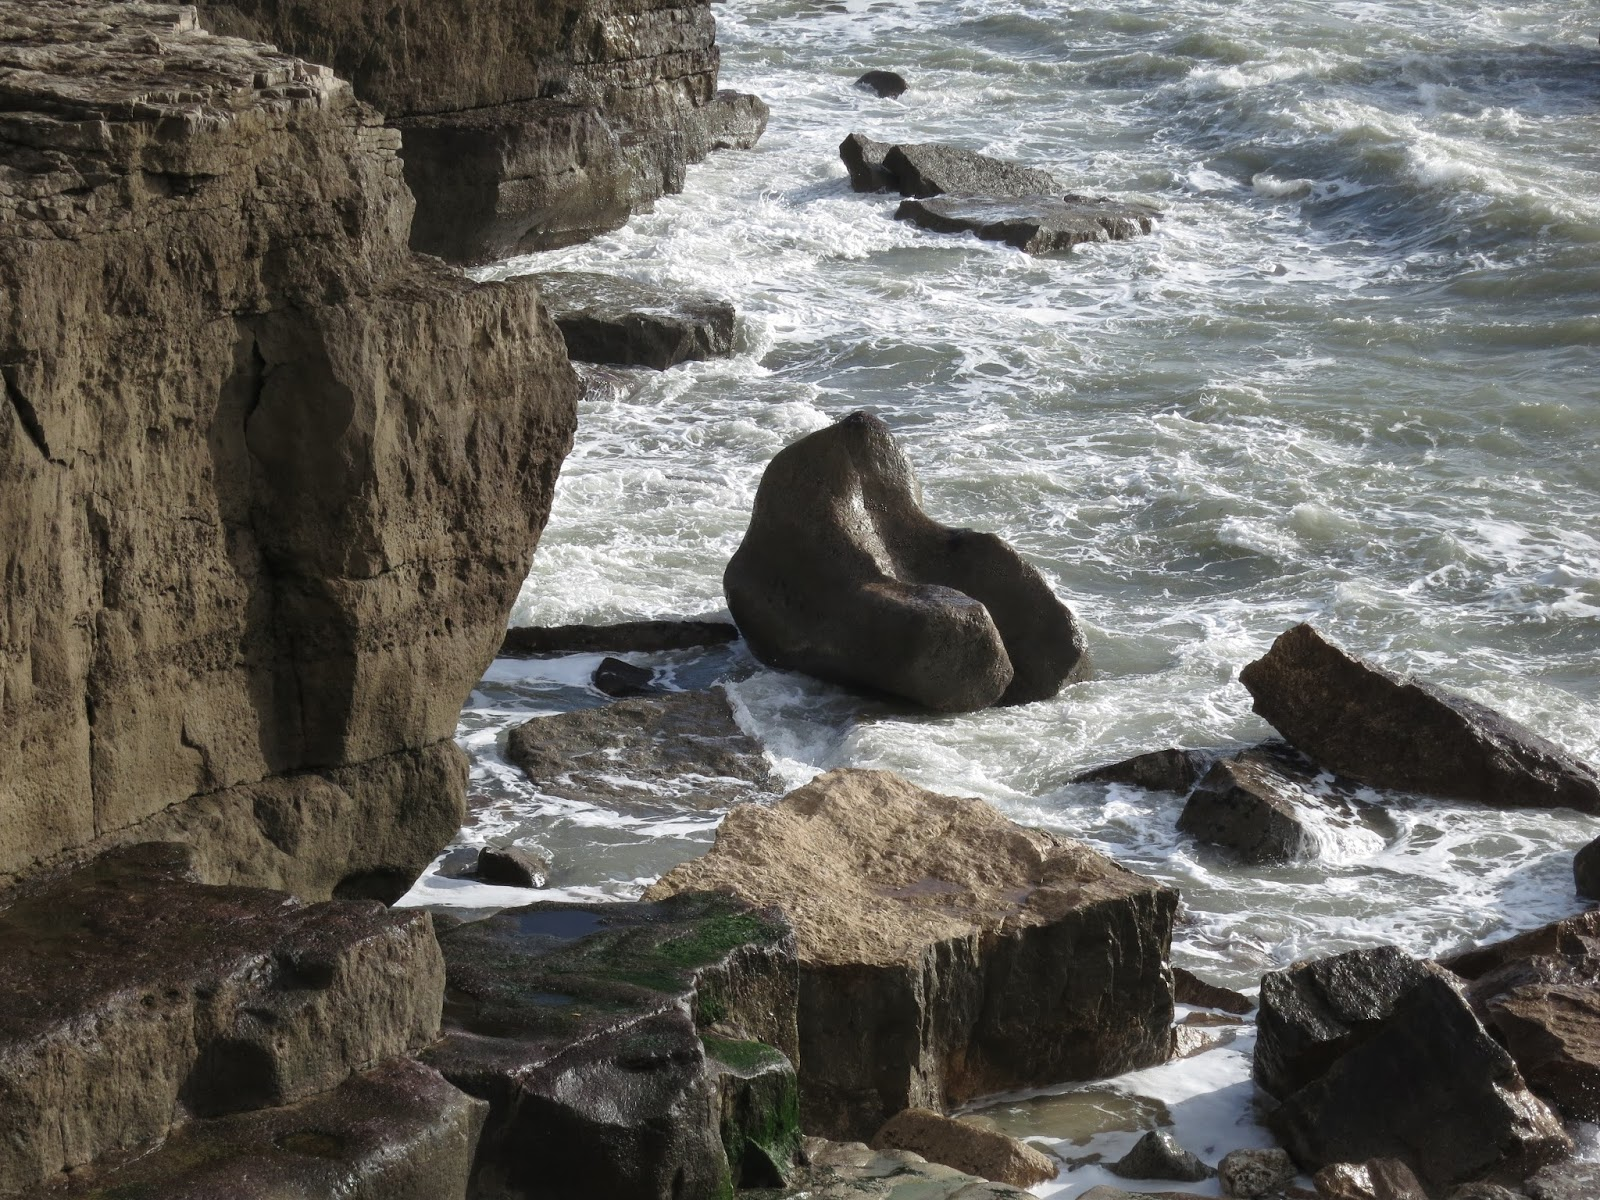 Sea washes over rocks at base of cliff - Portland Bill, Dorset, England.